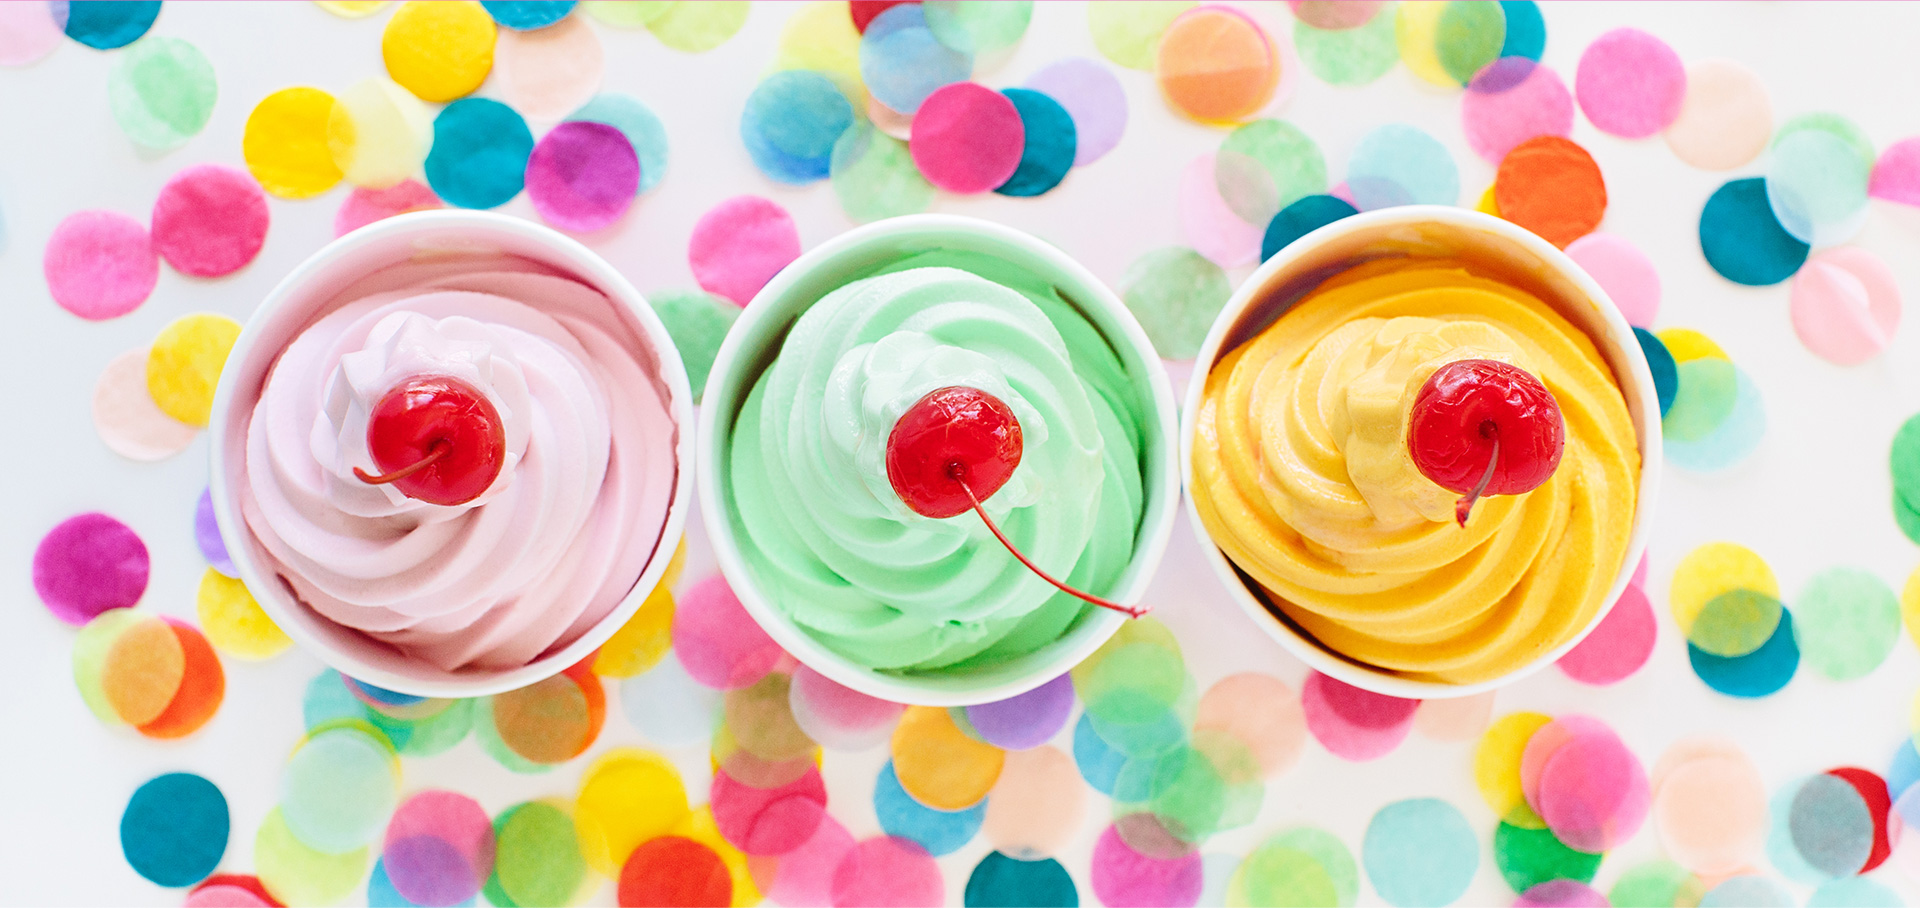 Three colorful cups of Menchie's frozen yogurt